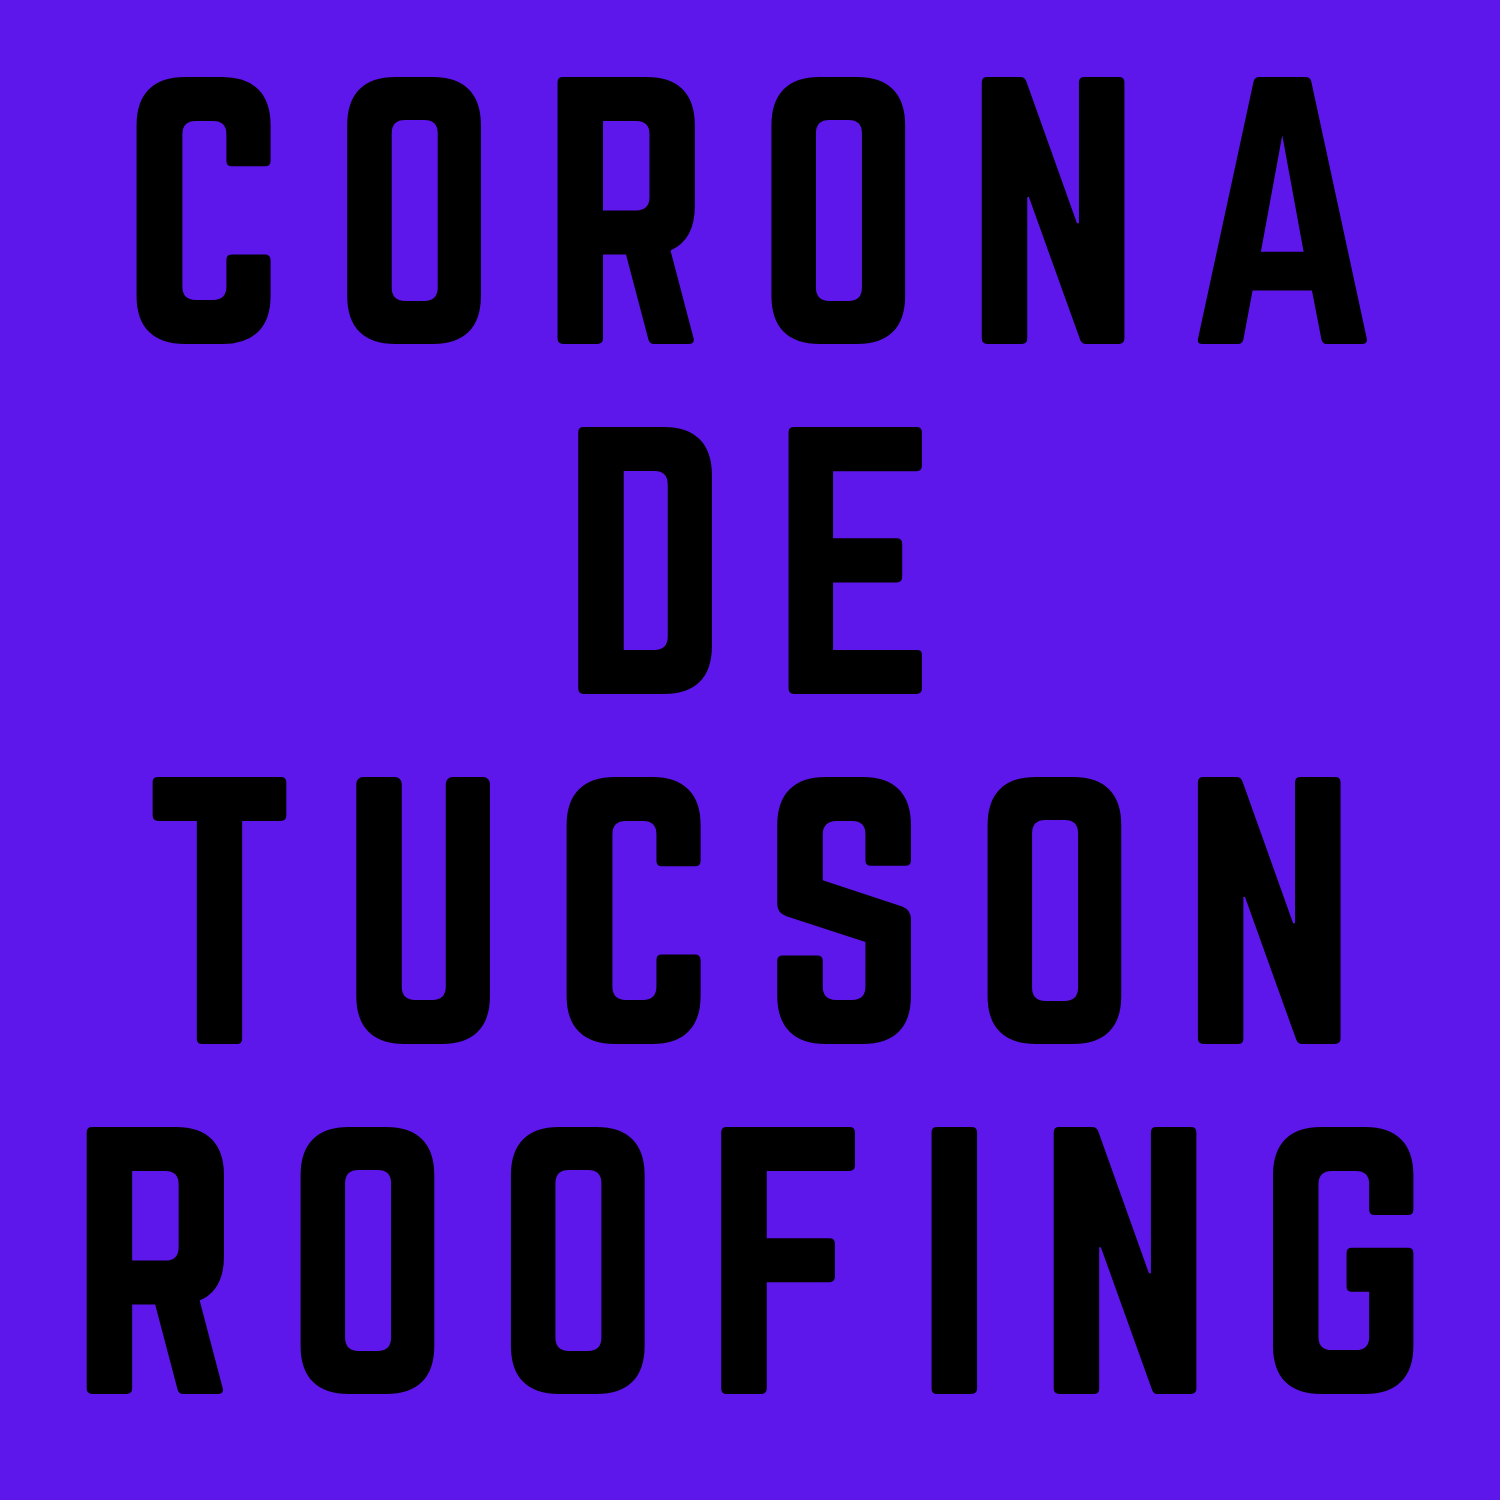 Corona De Tucson Roofing - Professional Roofing Blog